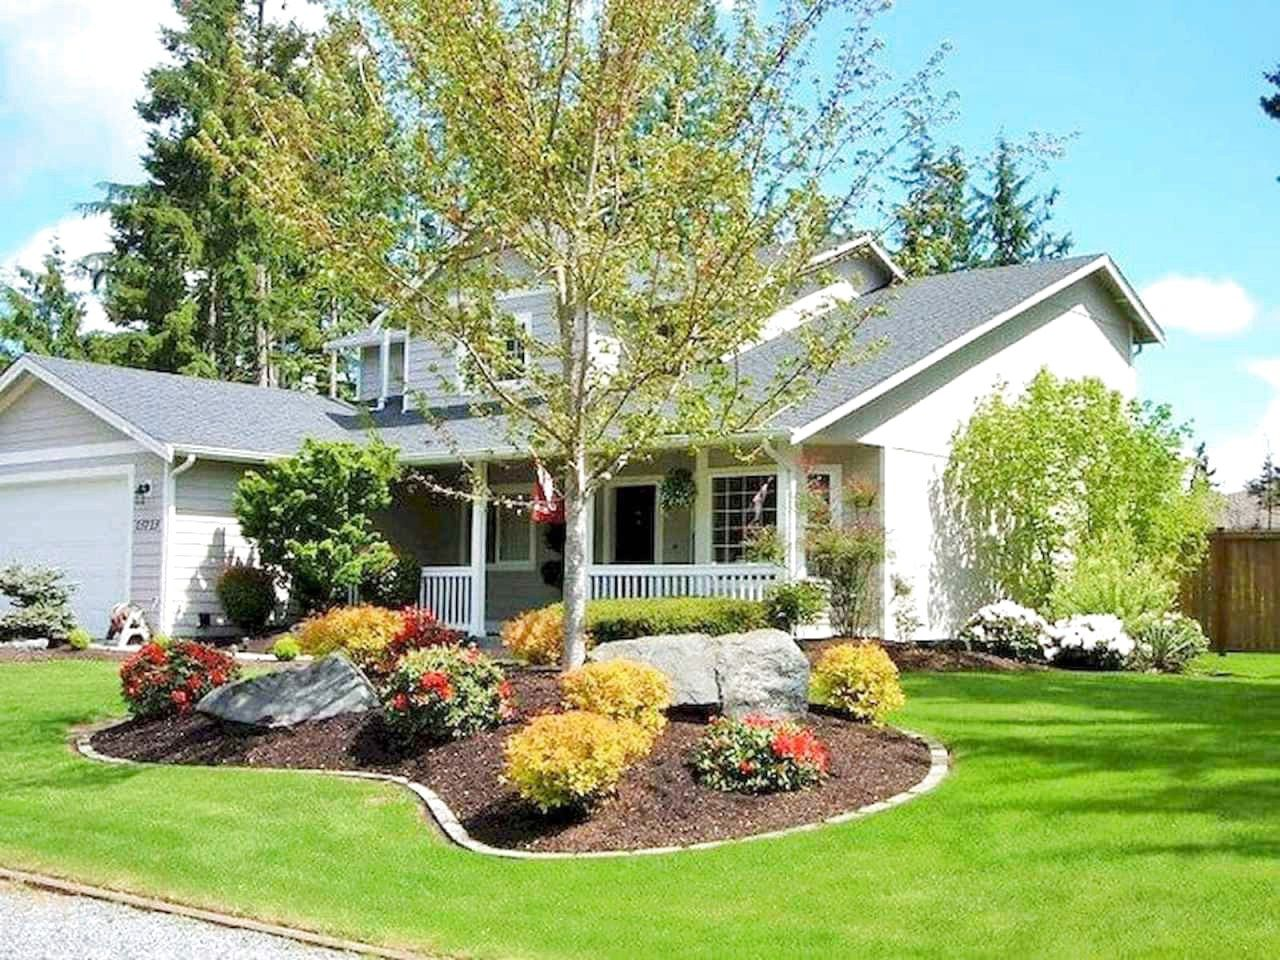 43 Best Front Yard Garden Landscaping Design Ideas And ... on Front Yard Renovation Ideas id=49679